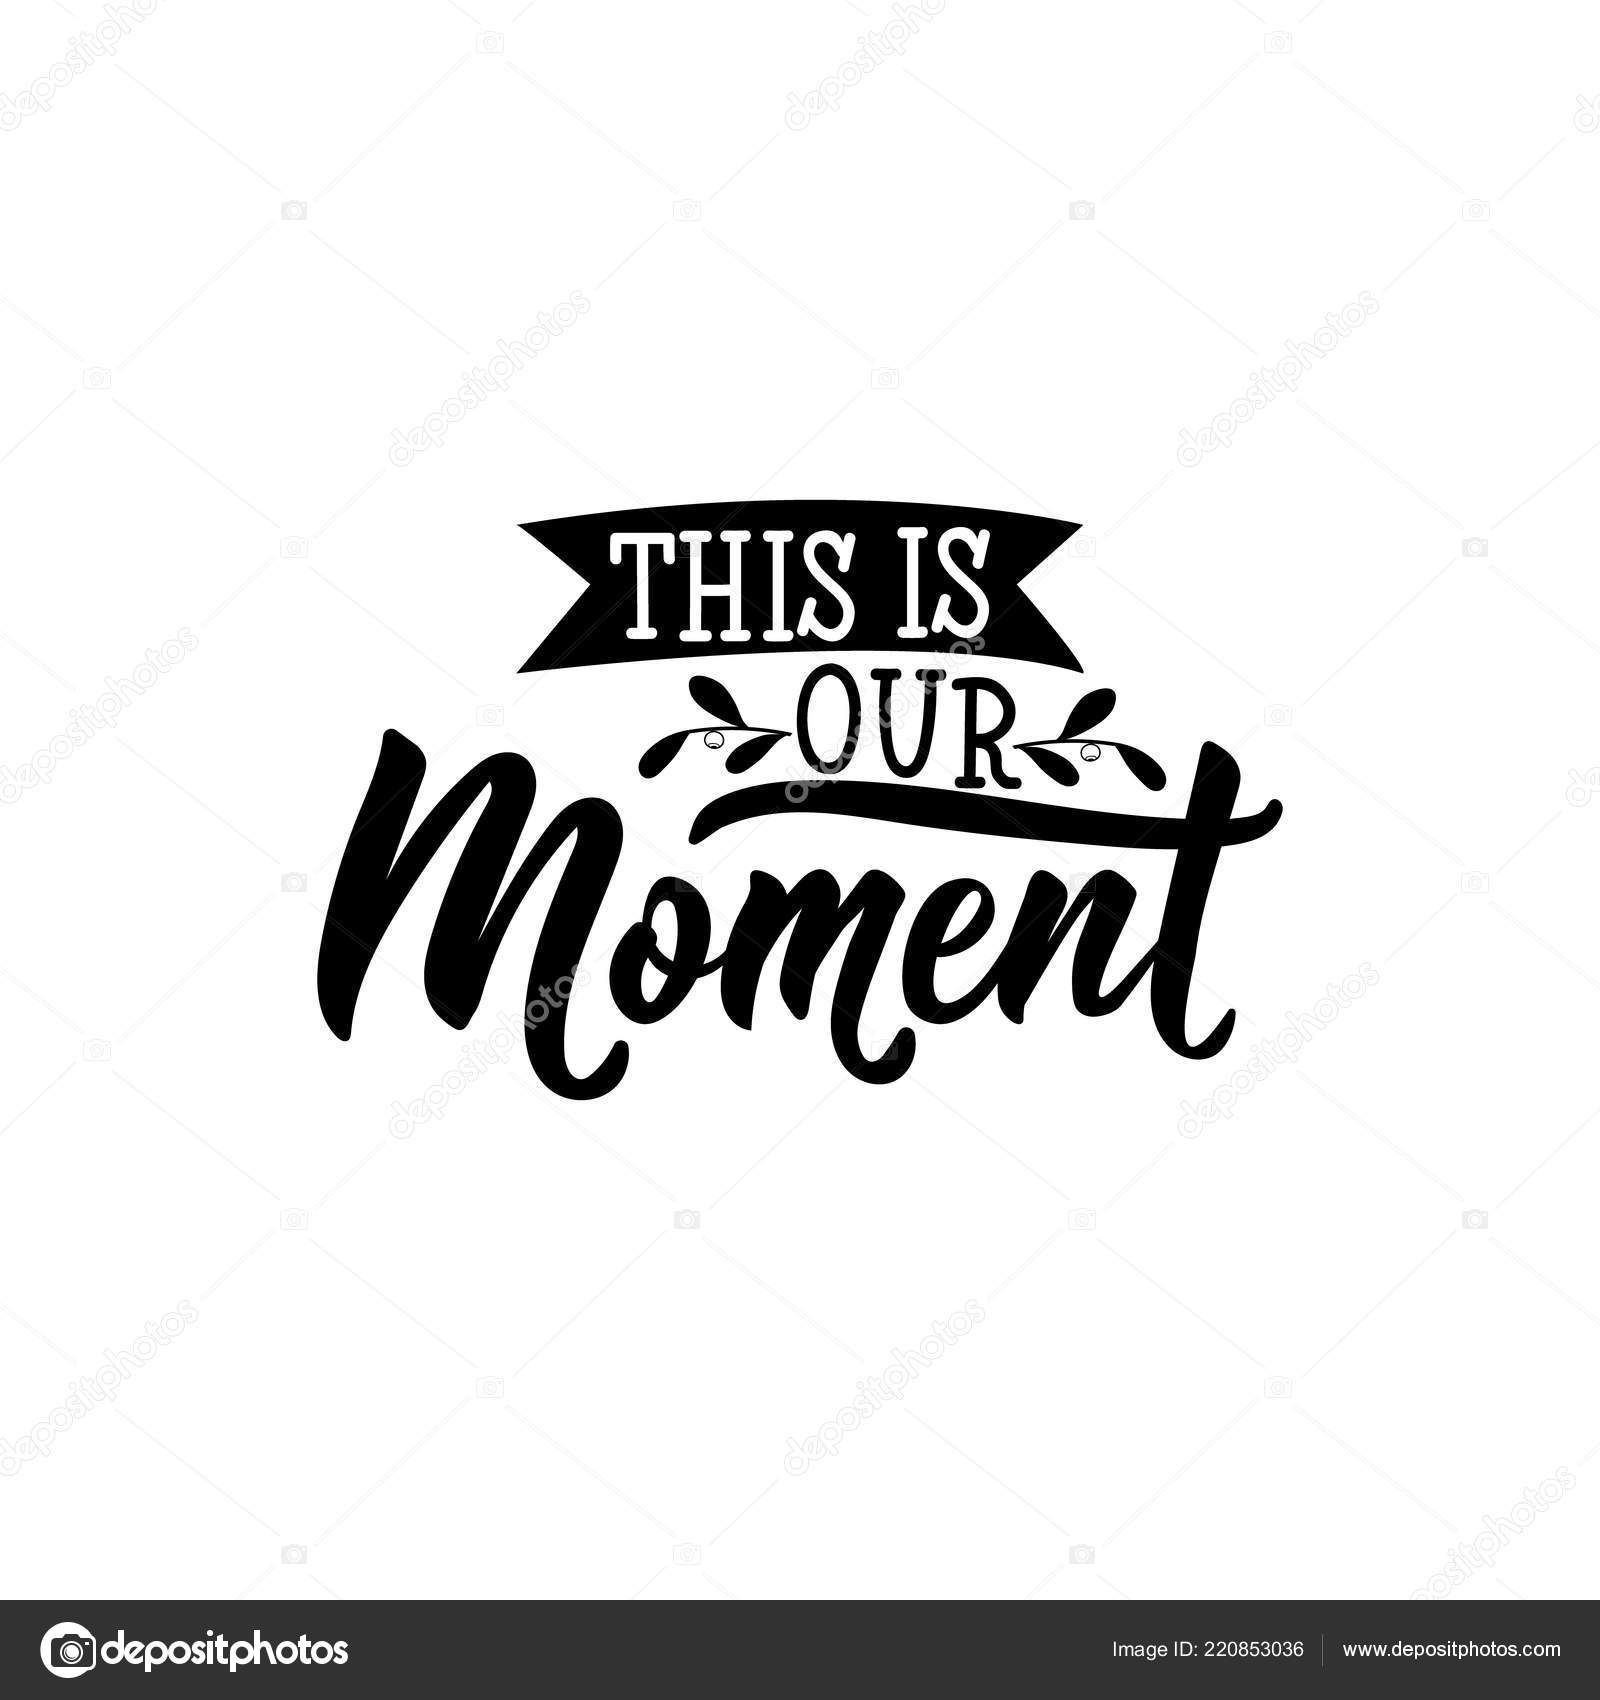 Make These Moments Count hand lettered inspirational quote art print